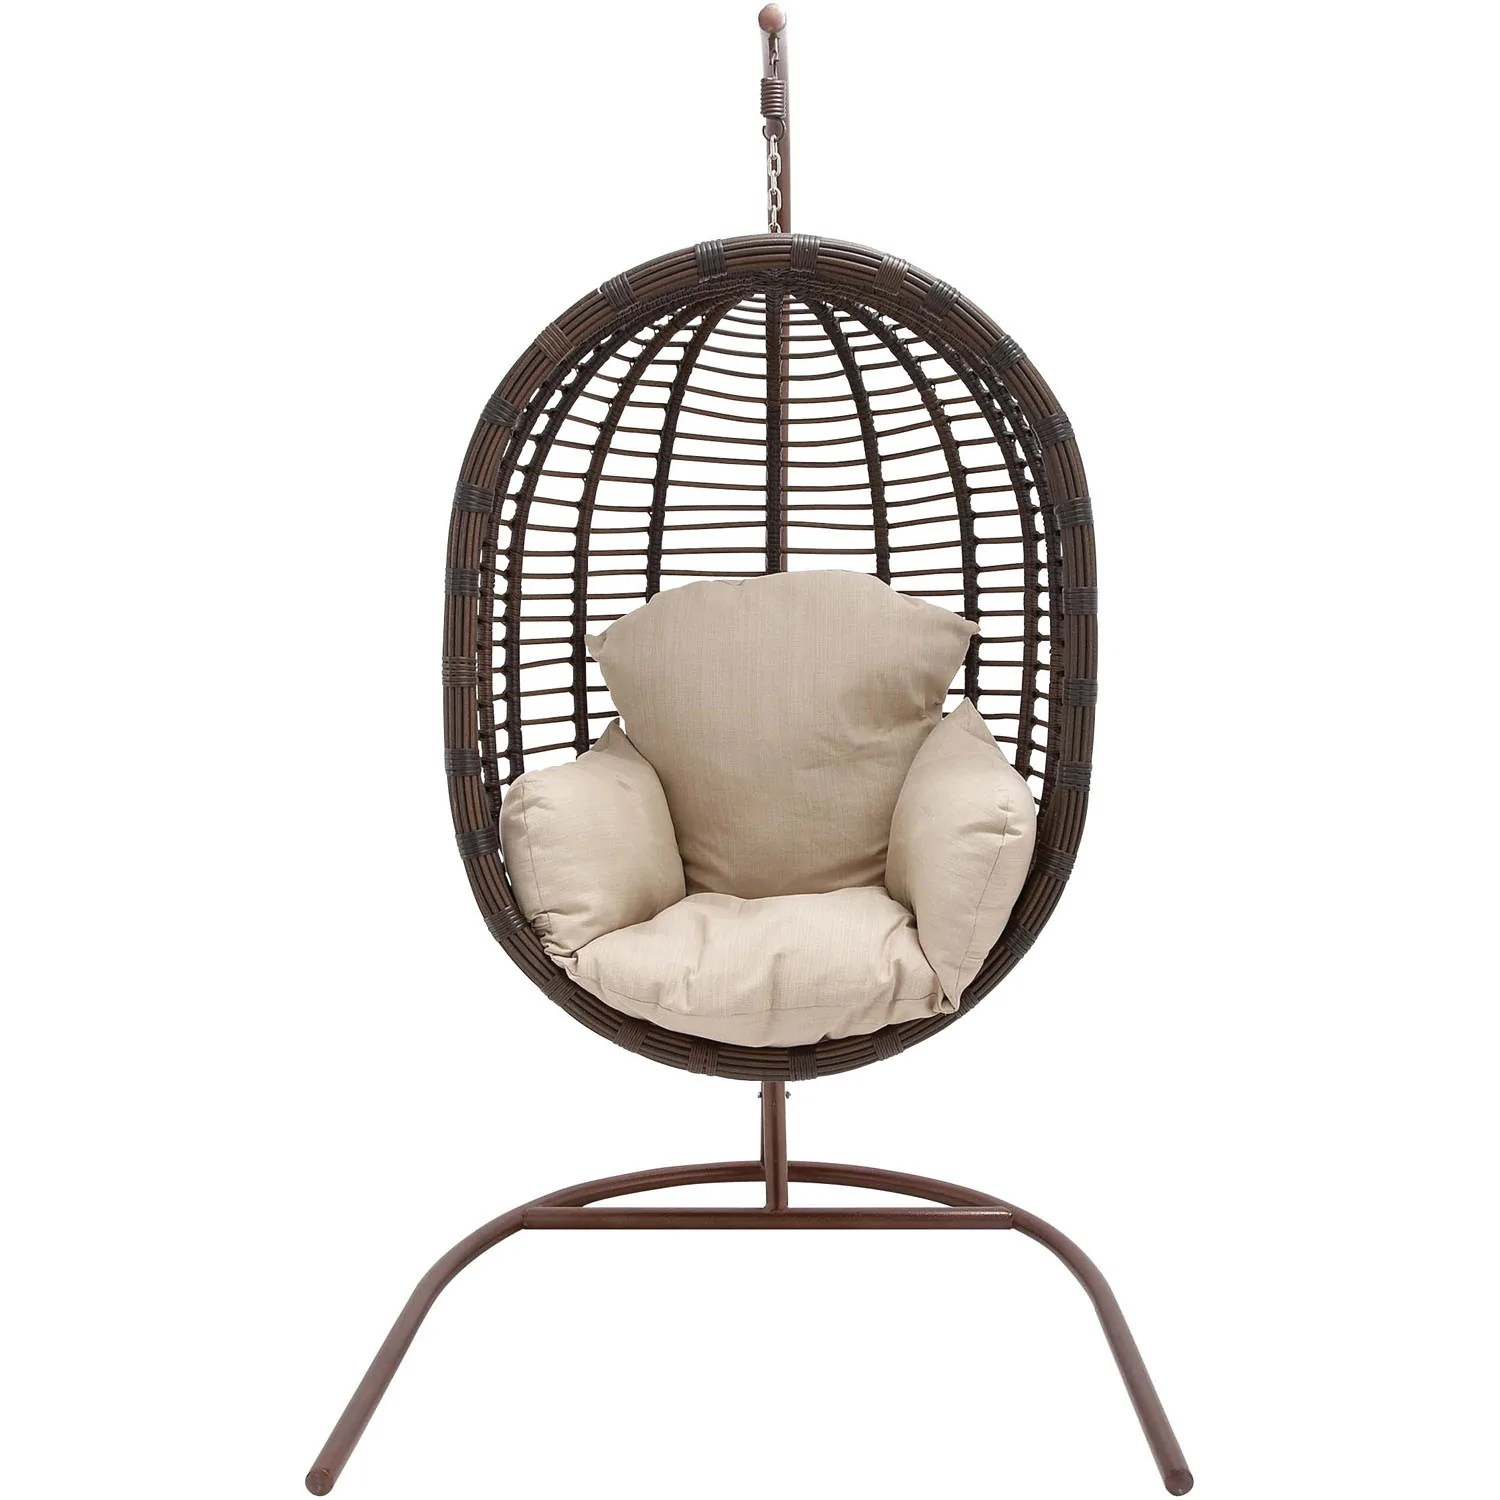 Hanging Egg Chair Outdoor Hanover Outdoor Wicker Rattan Hanging Egg Chair Swing Egg Swing03